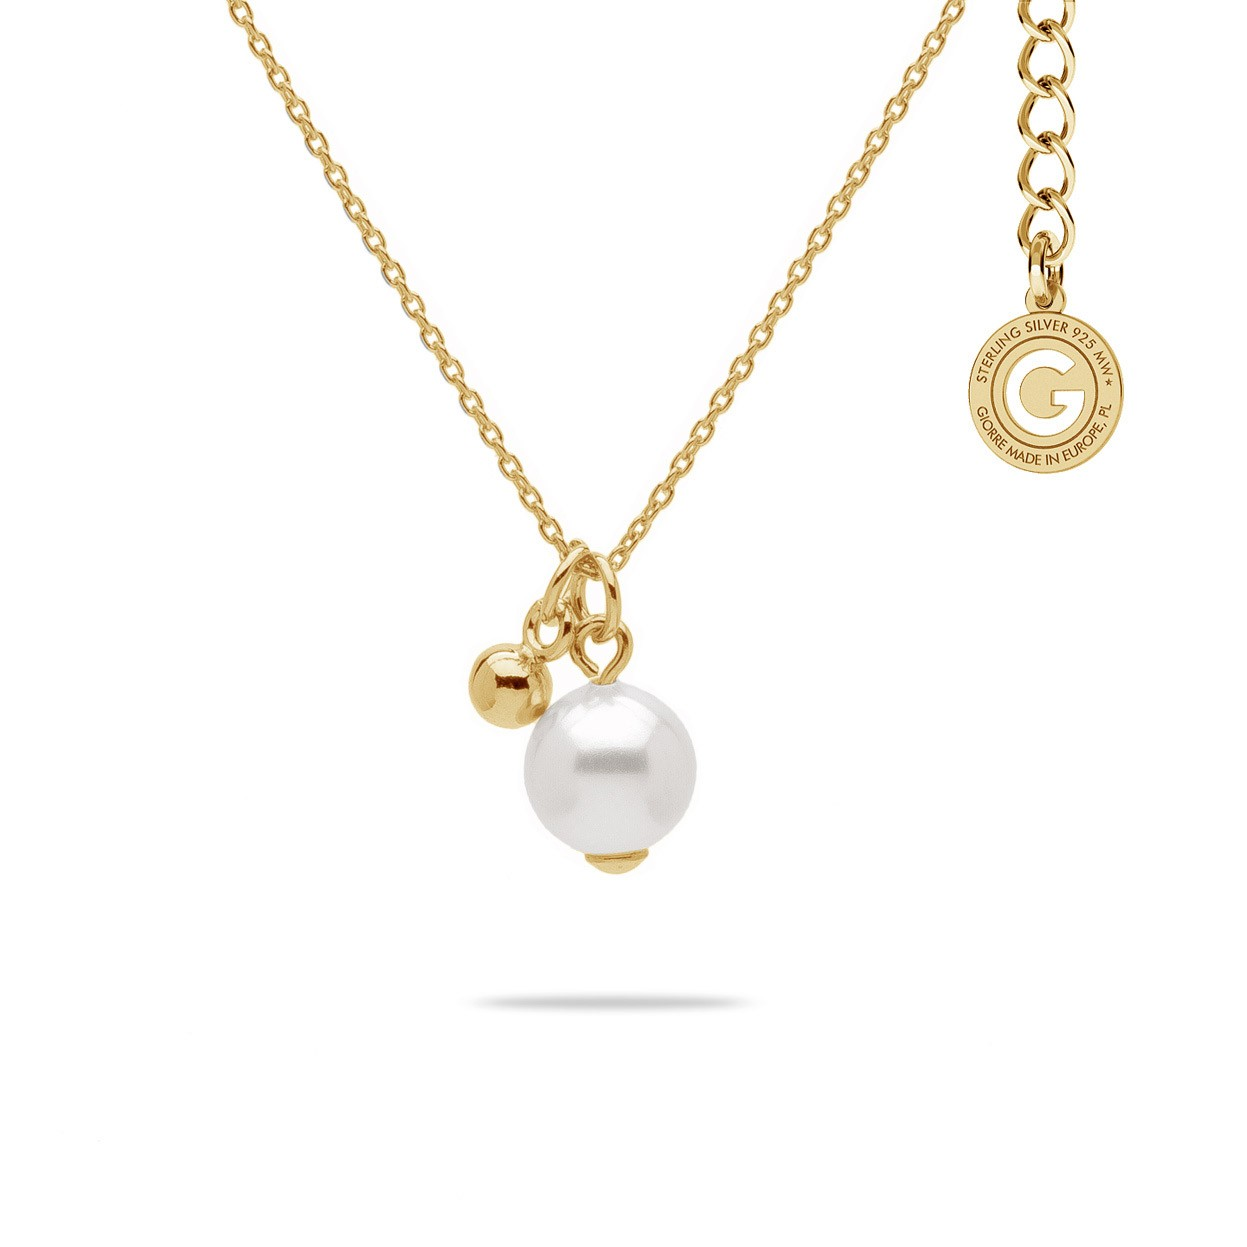 NECKLACE WITH PEARL, STERLING SILVER 925